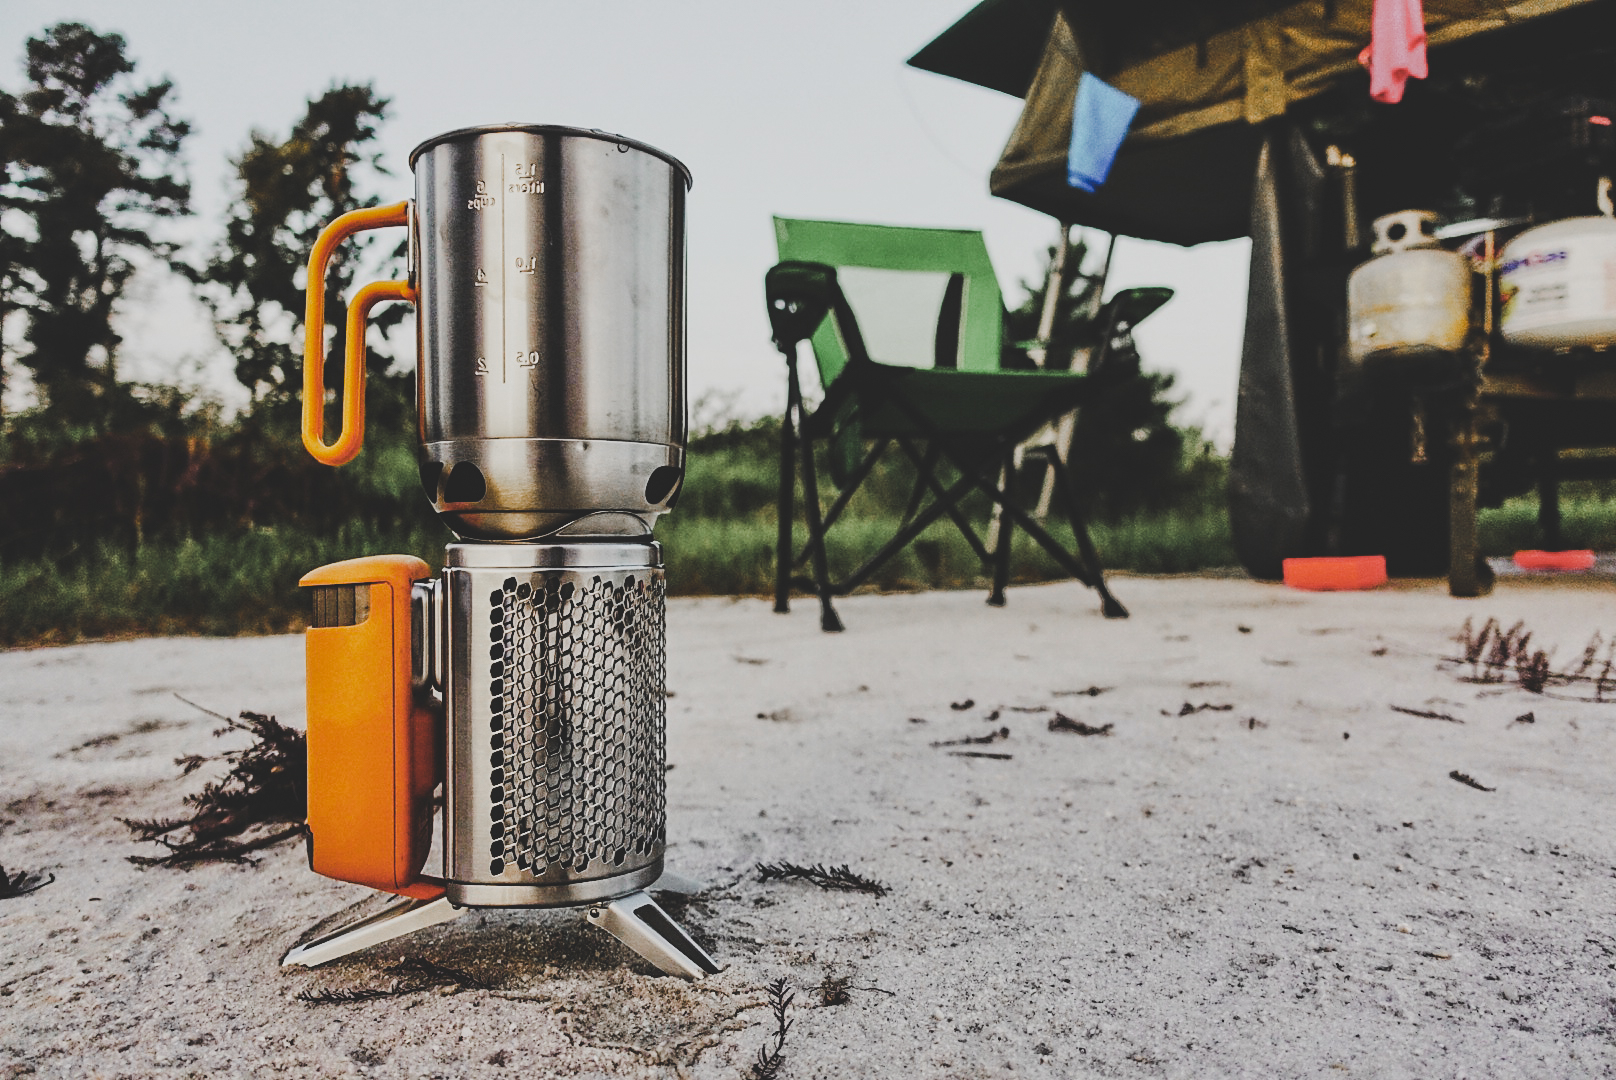 BioLite CampStove 2 | $129.95 ($26 off with coupon BIOGMD20)